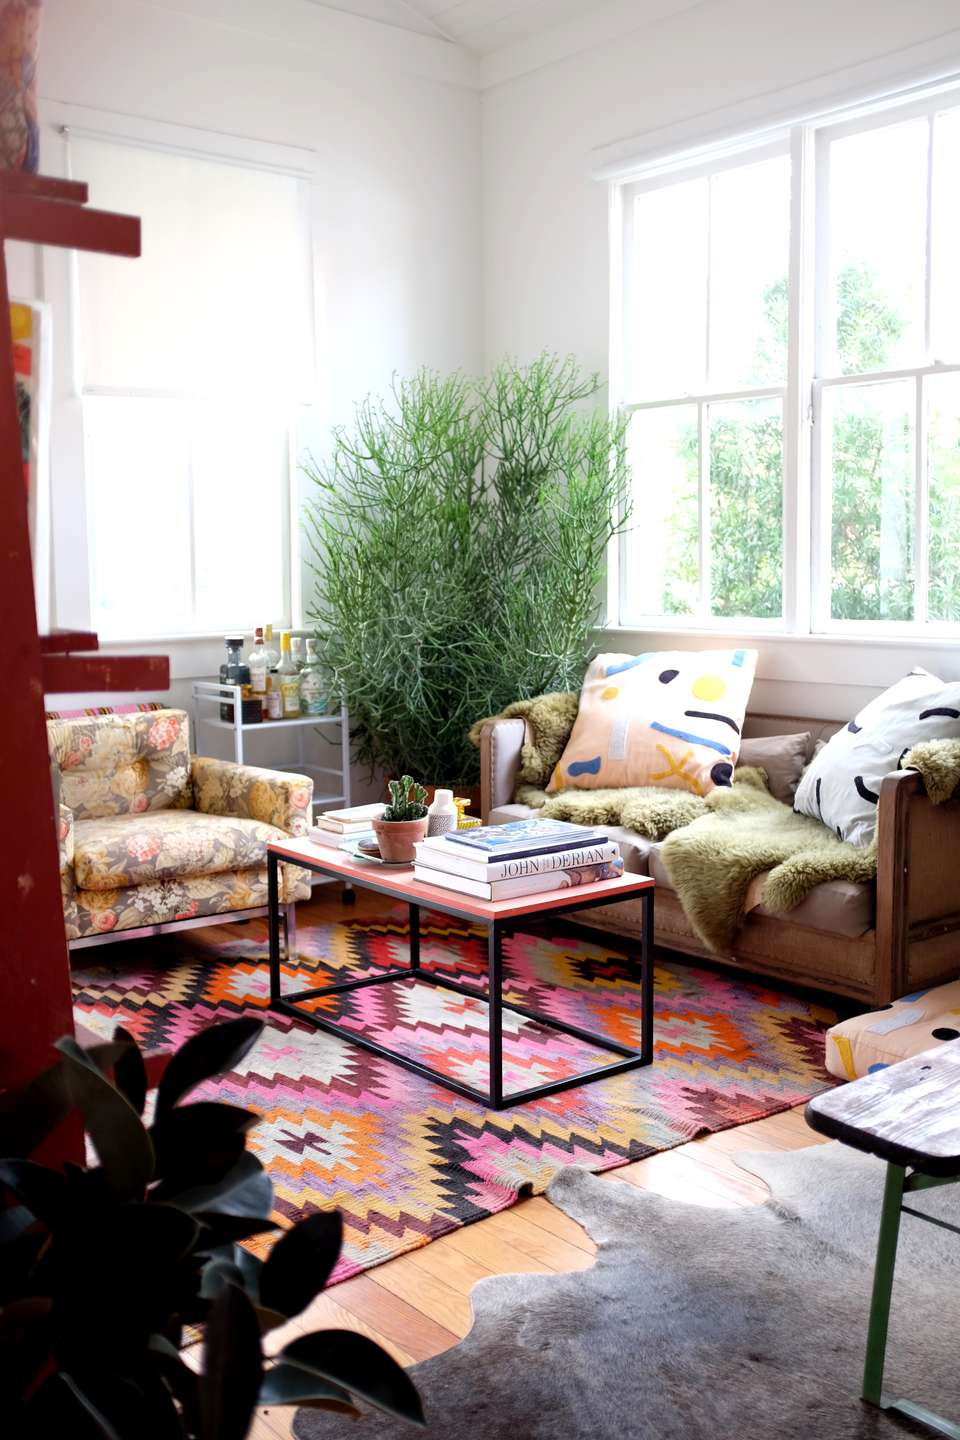 Modern bohemian room with plants and geometric rug